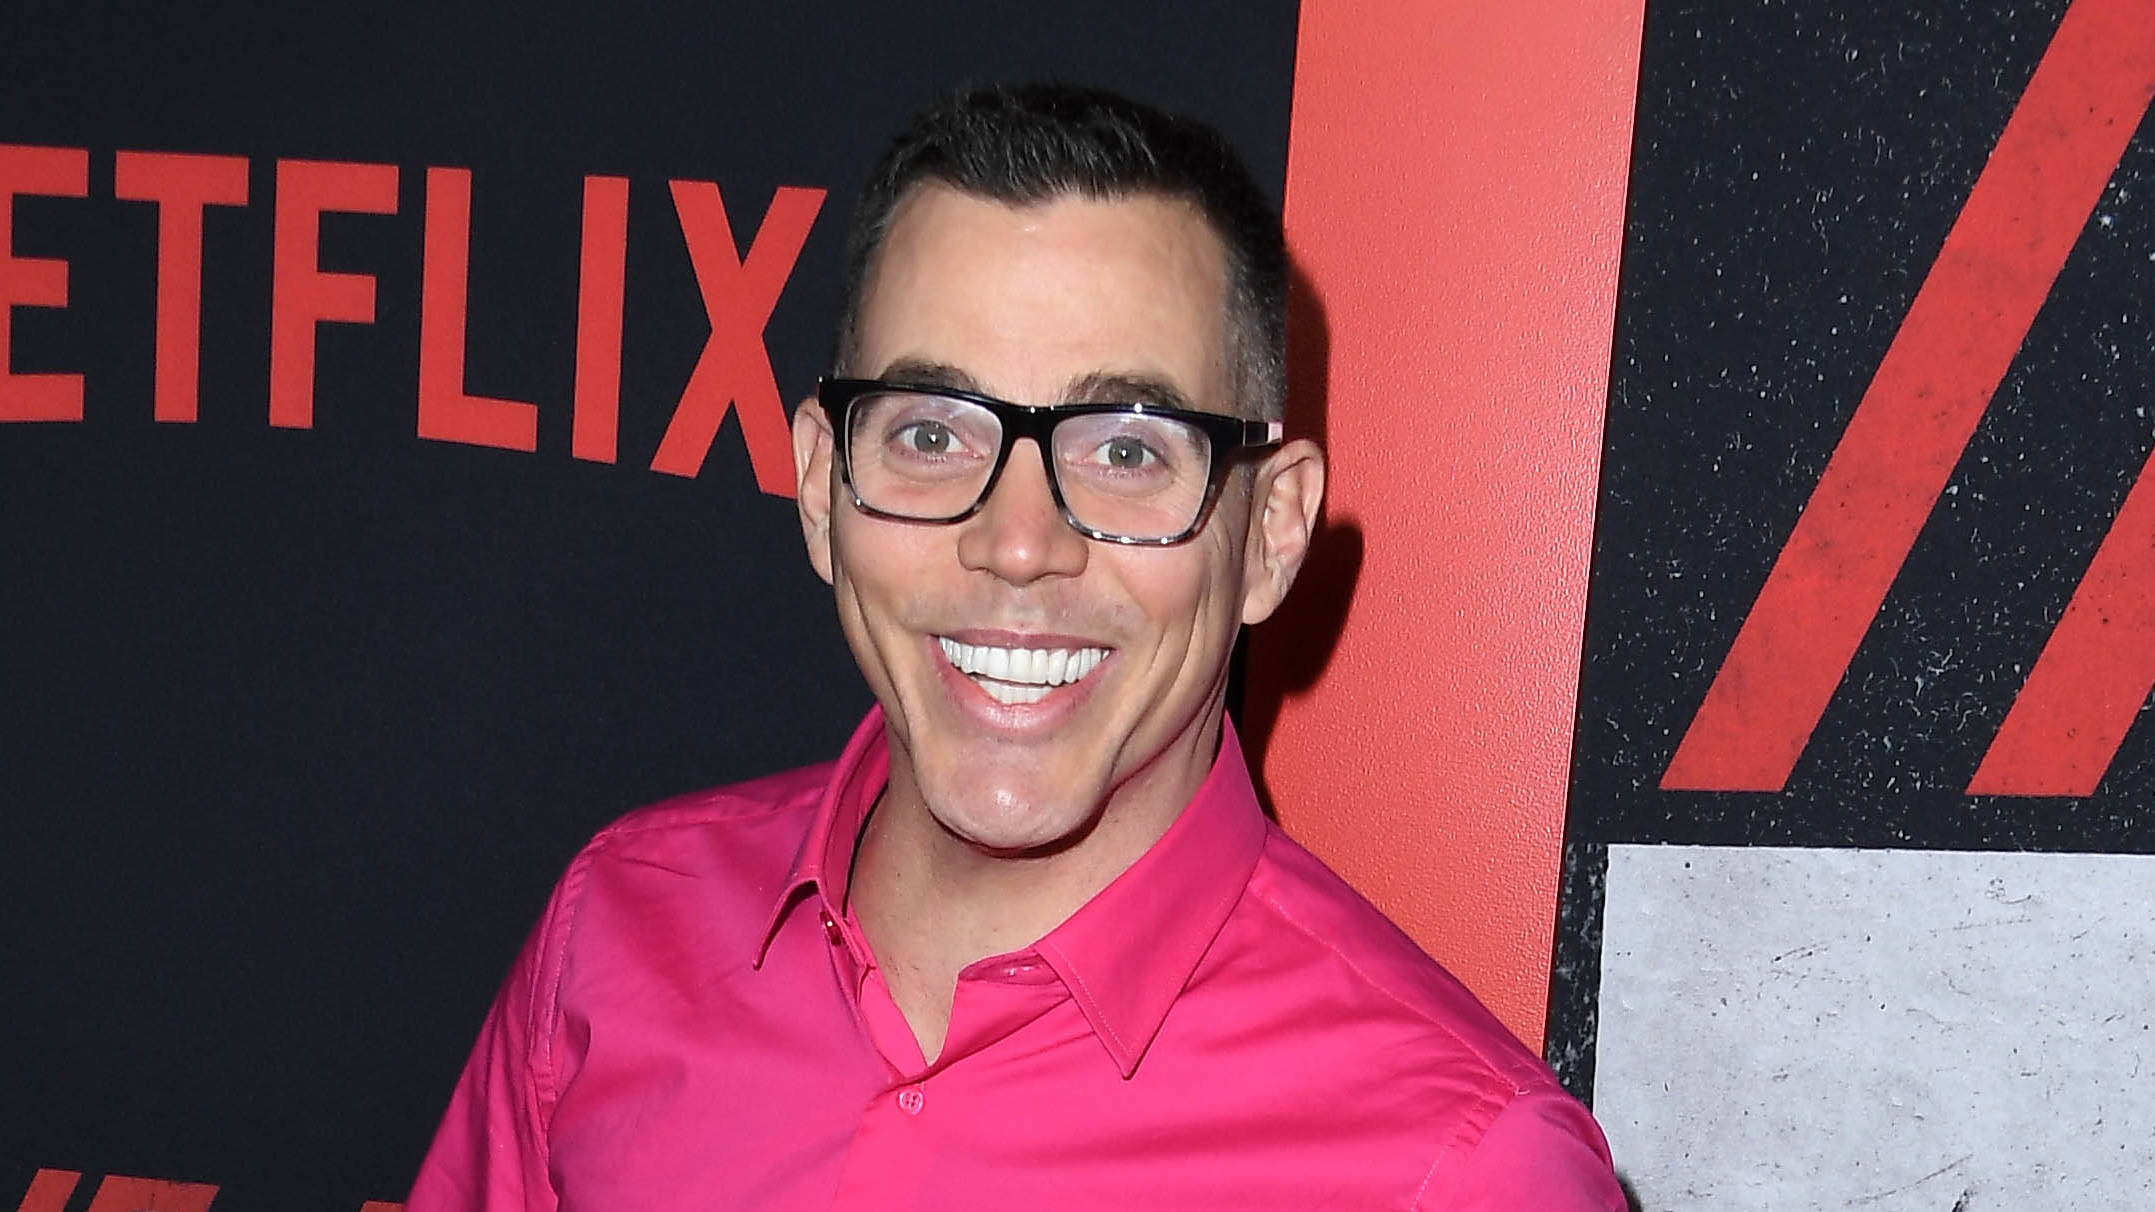 Steve-O Duct Tapes Himself to Promote His New Comedy Special